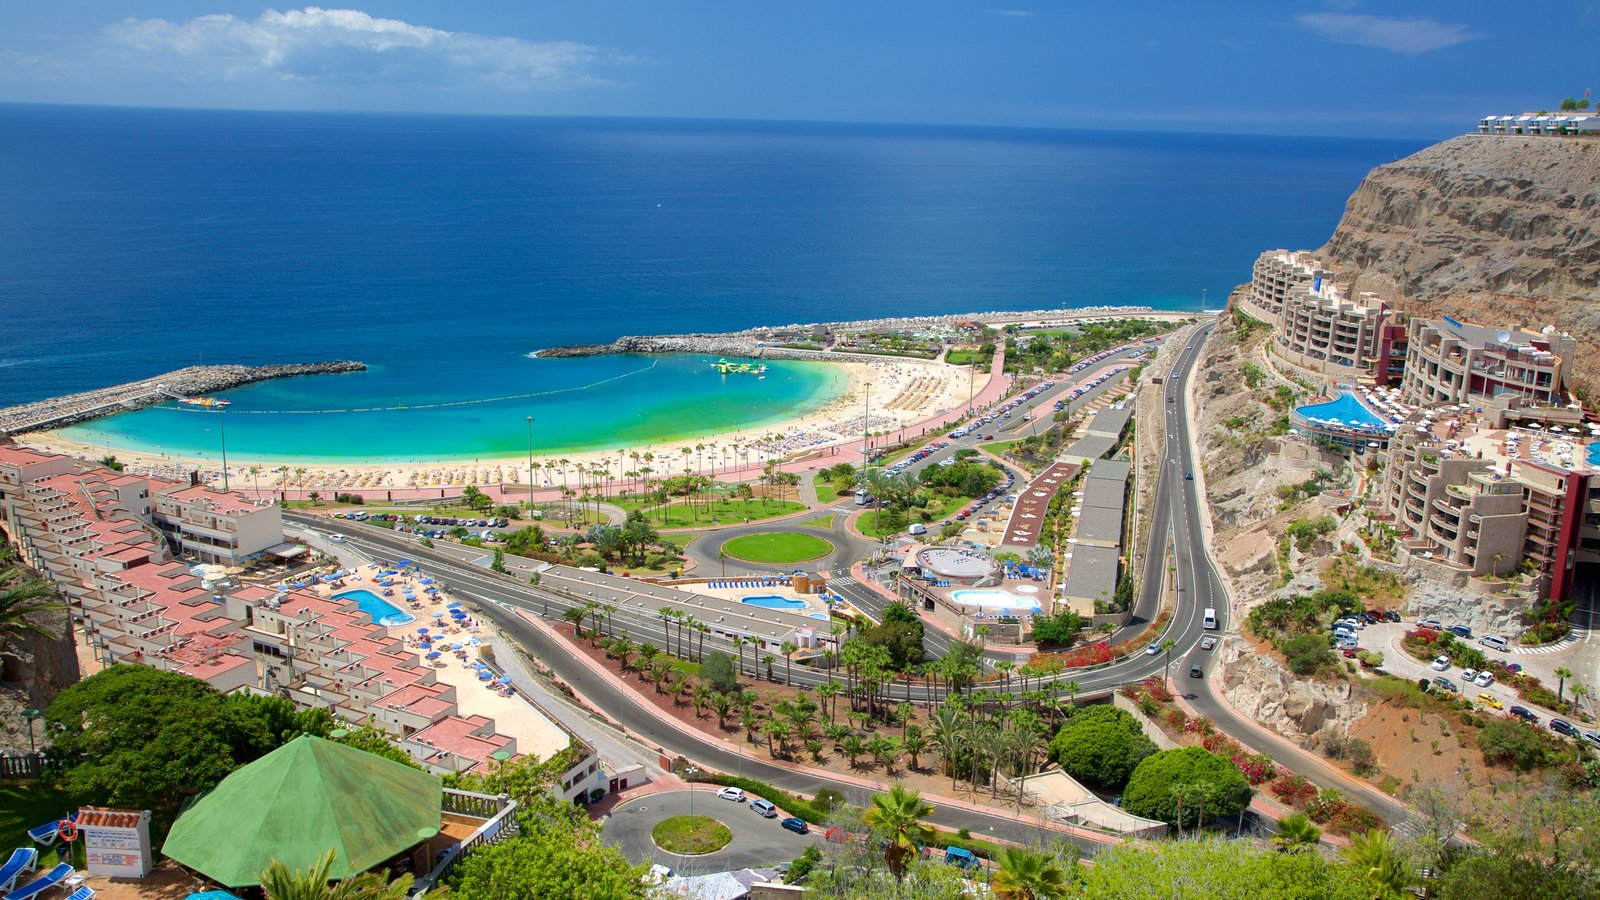 Amadores Beach featuring general coastal views, a sandy beach and a city